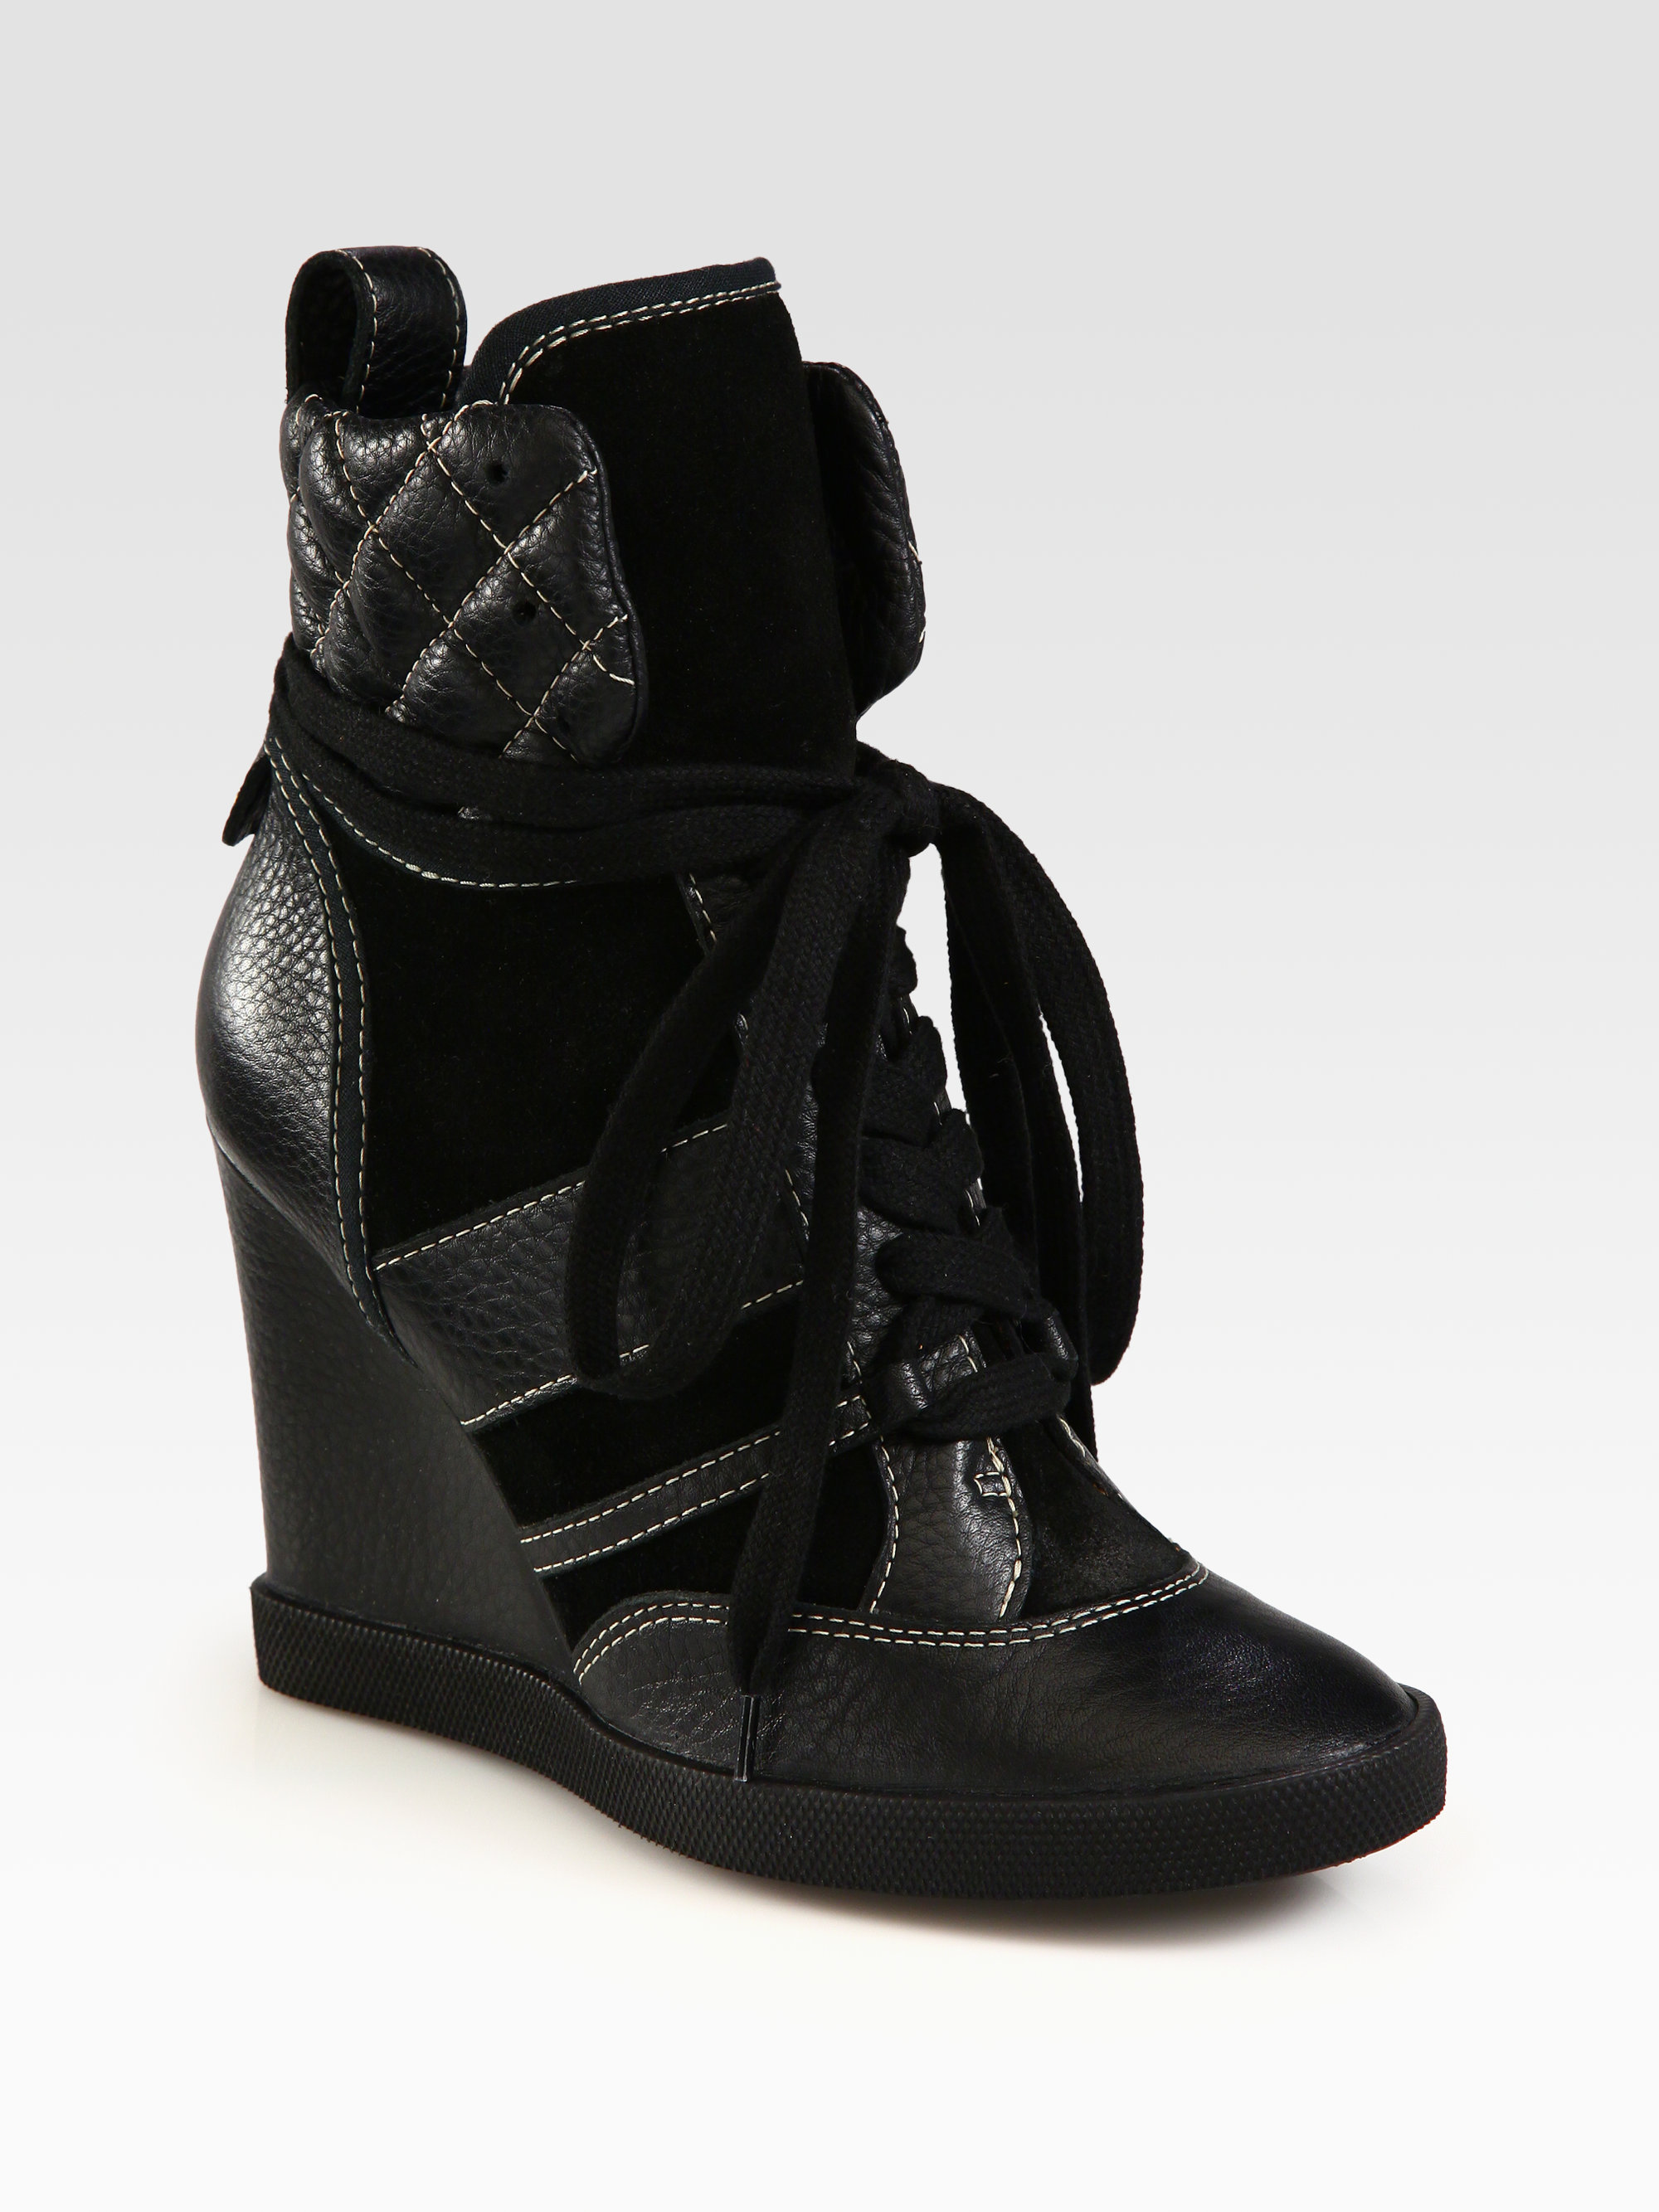 chlo leather and suede high top wedge sneakers in black lyst. Black Bedroom Furniture Sets. Home Design Ideas